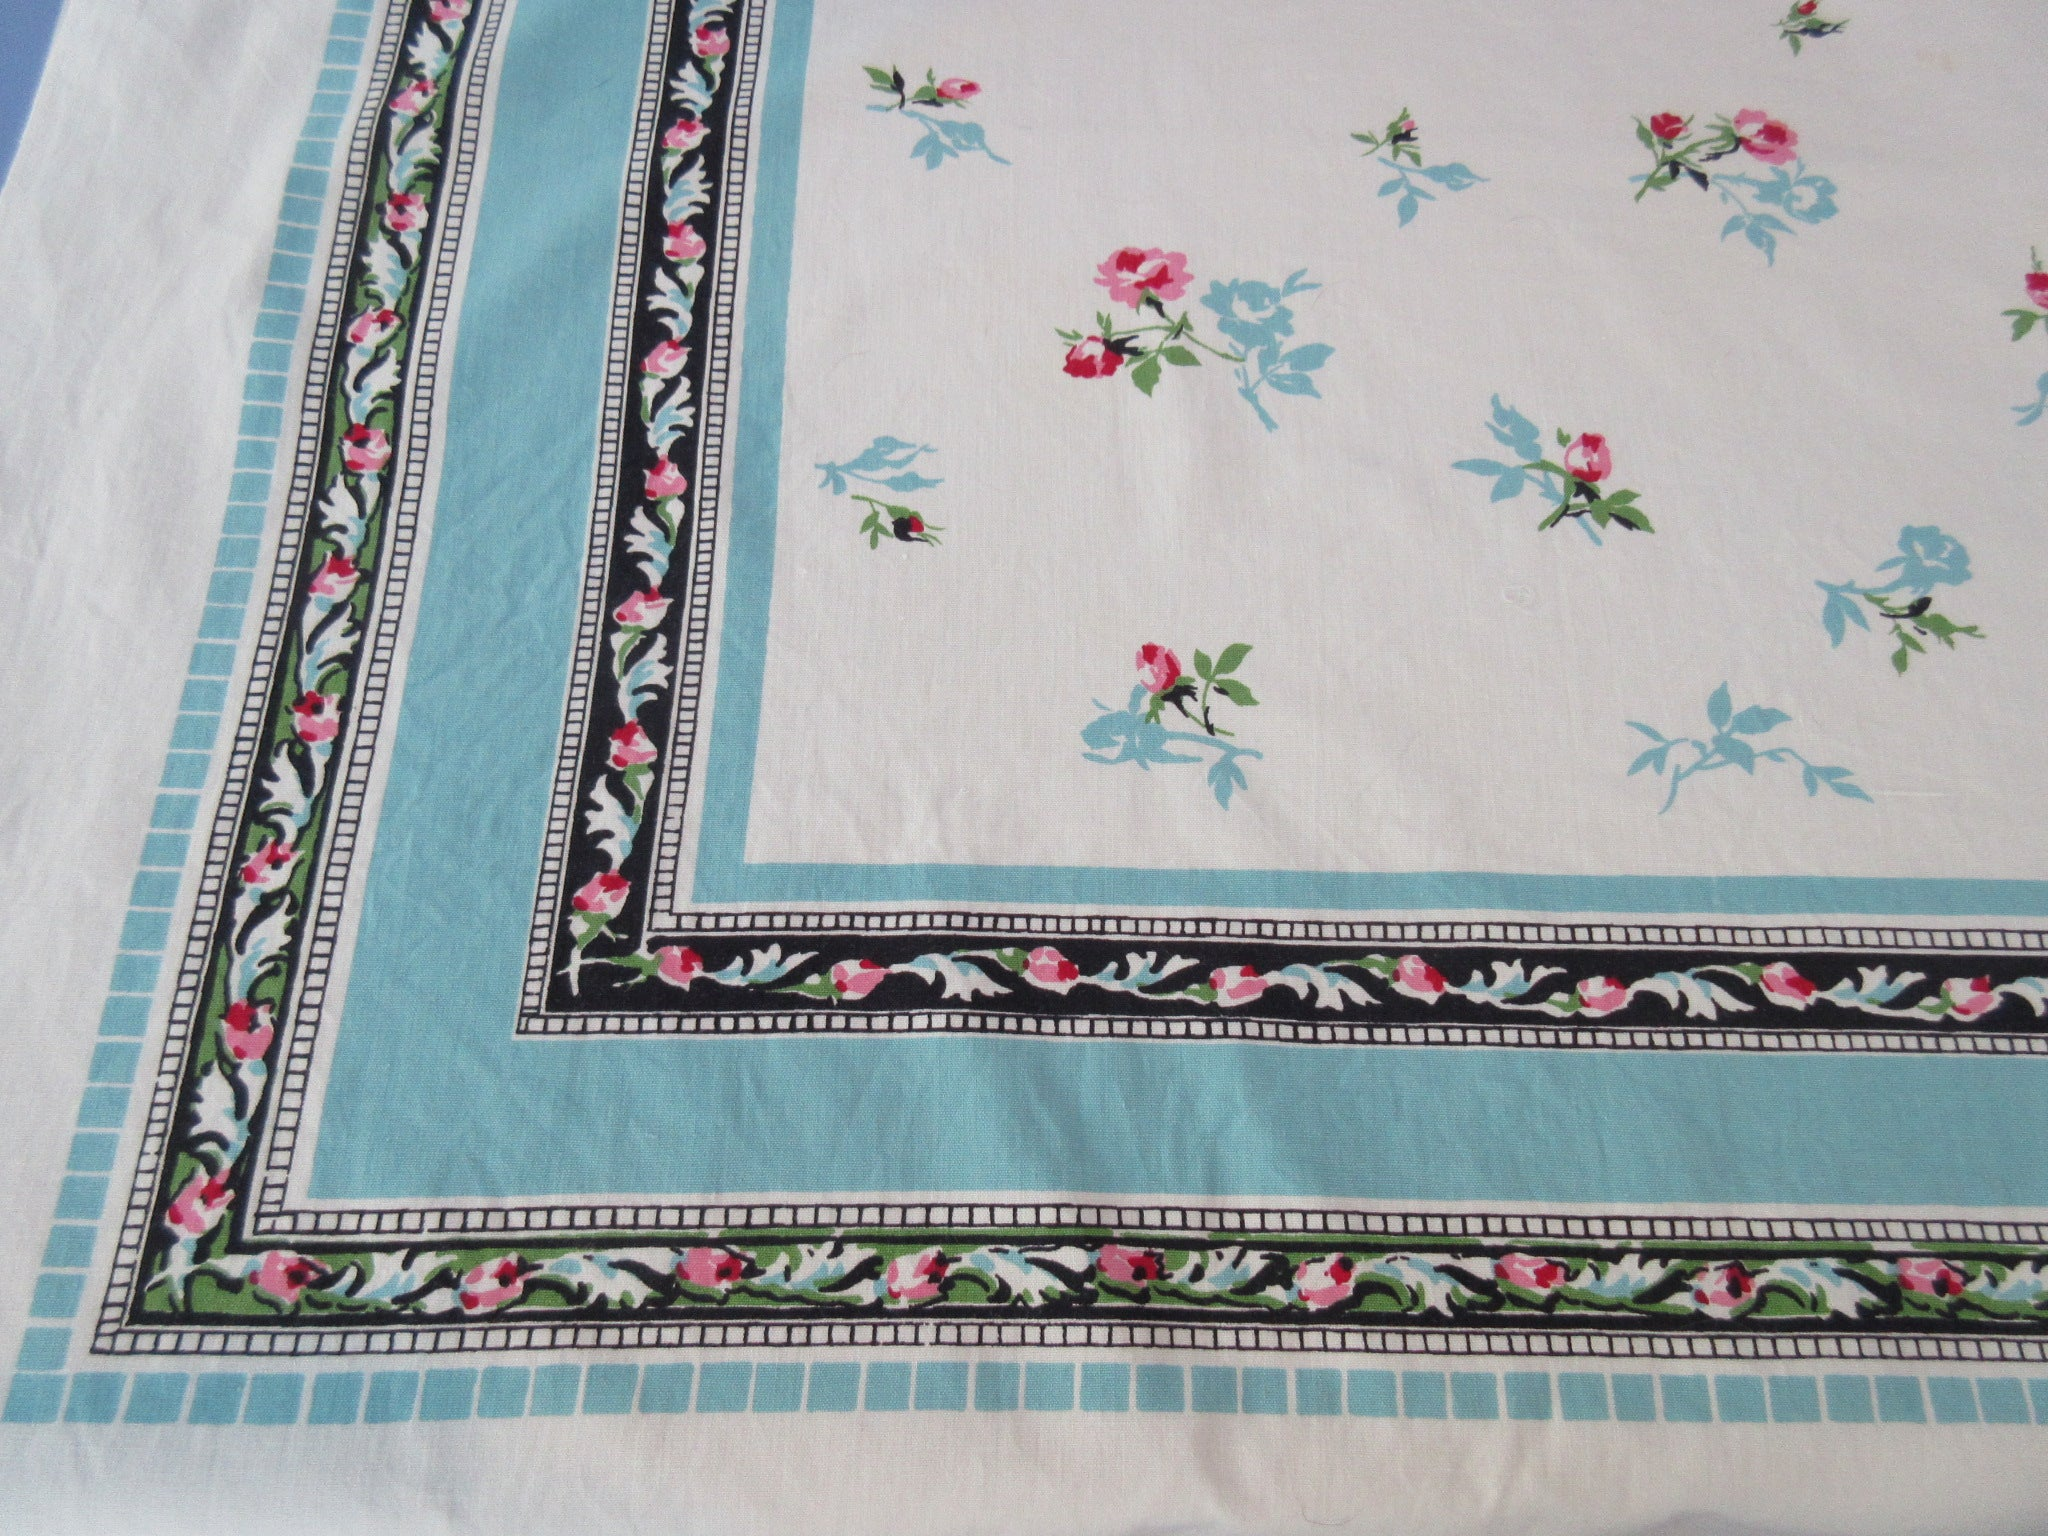 Petite Pink Roses Robin's Egg Blue Floral Vintage Printed Tablecloth (54 X 48)